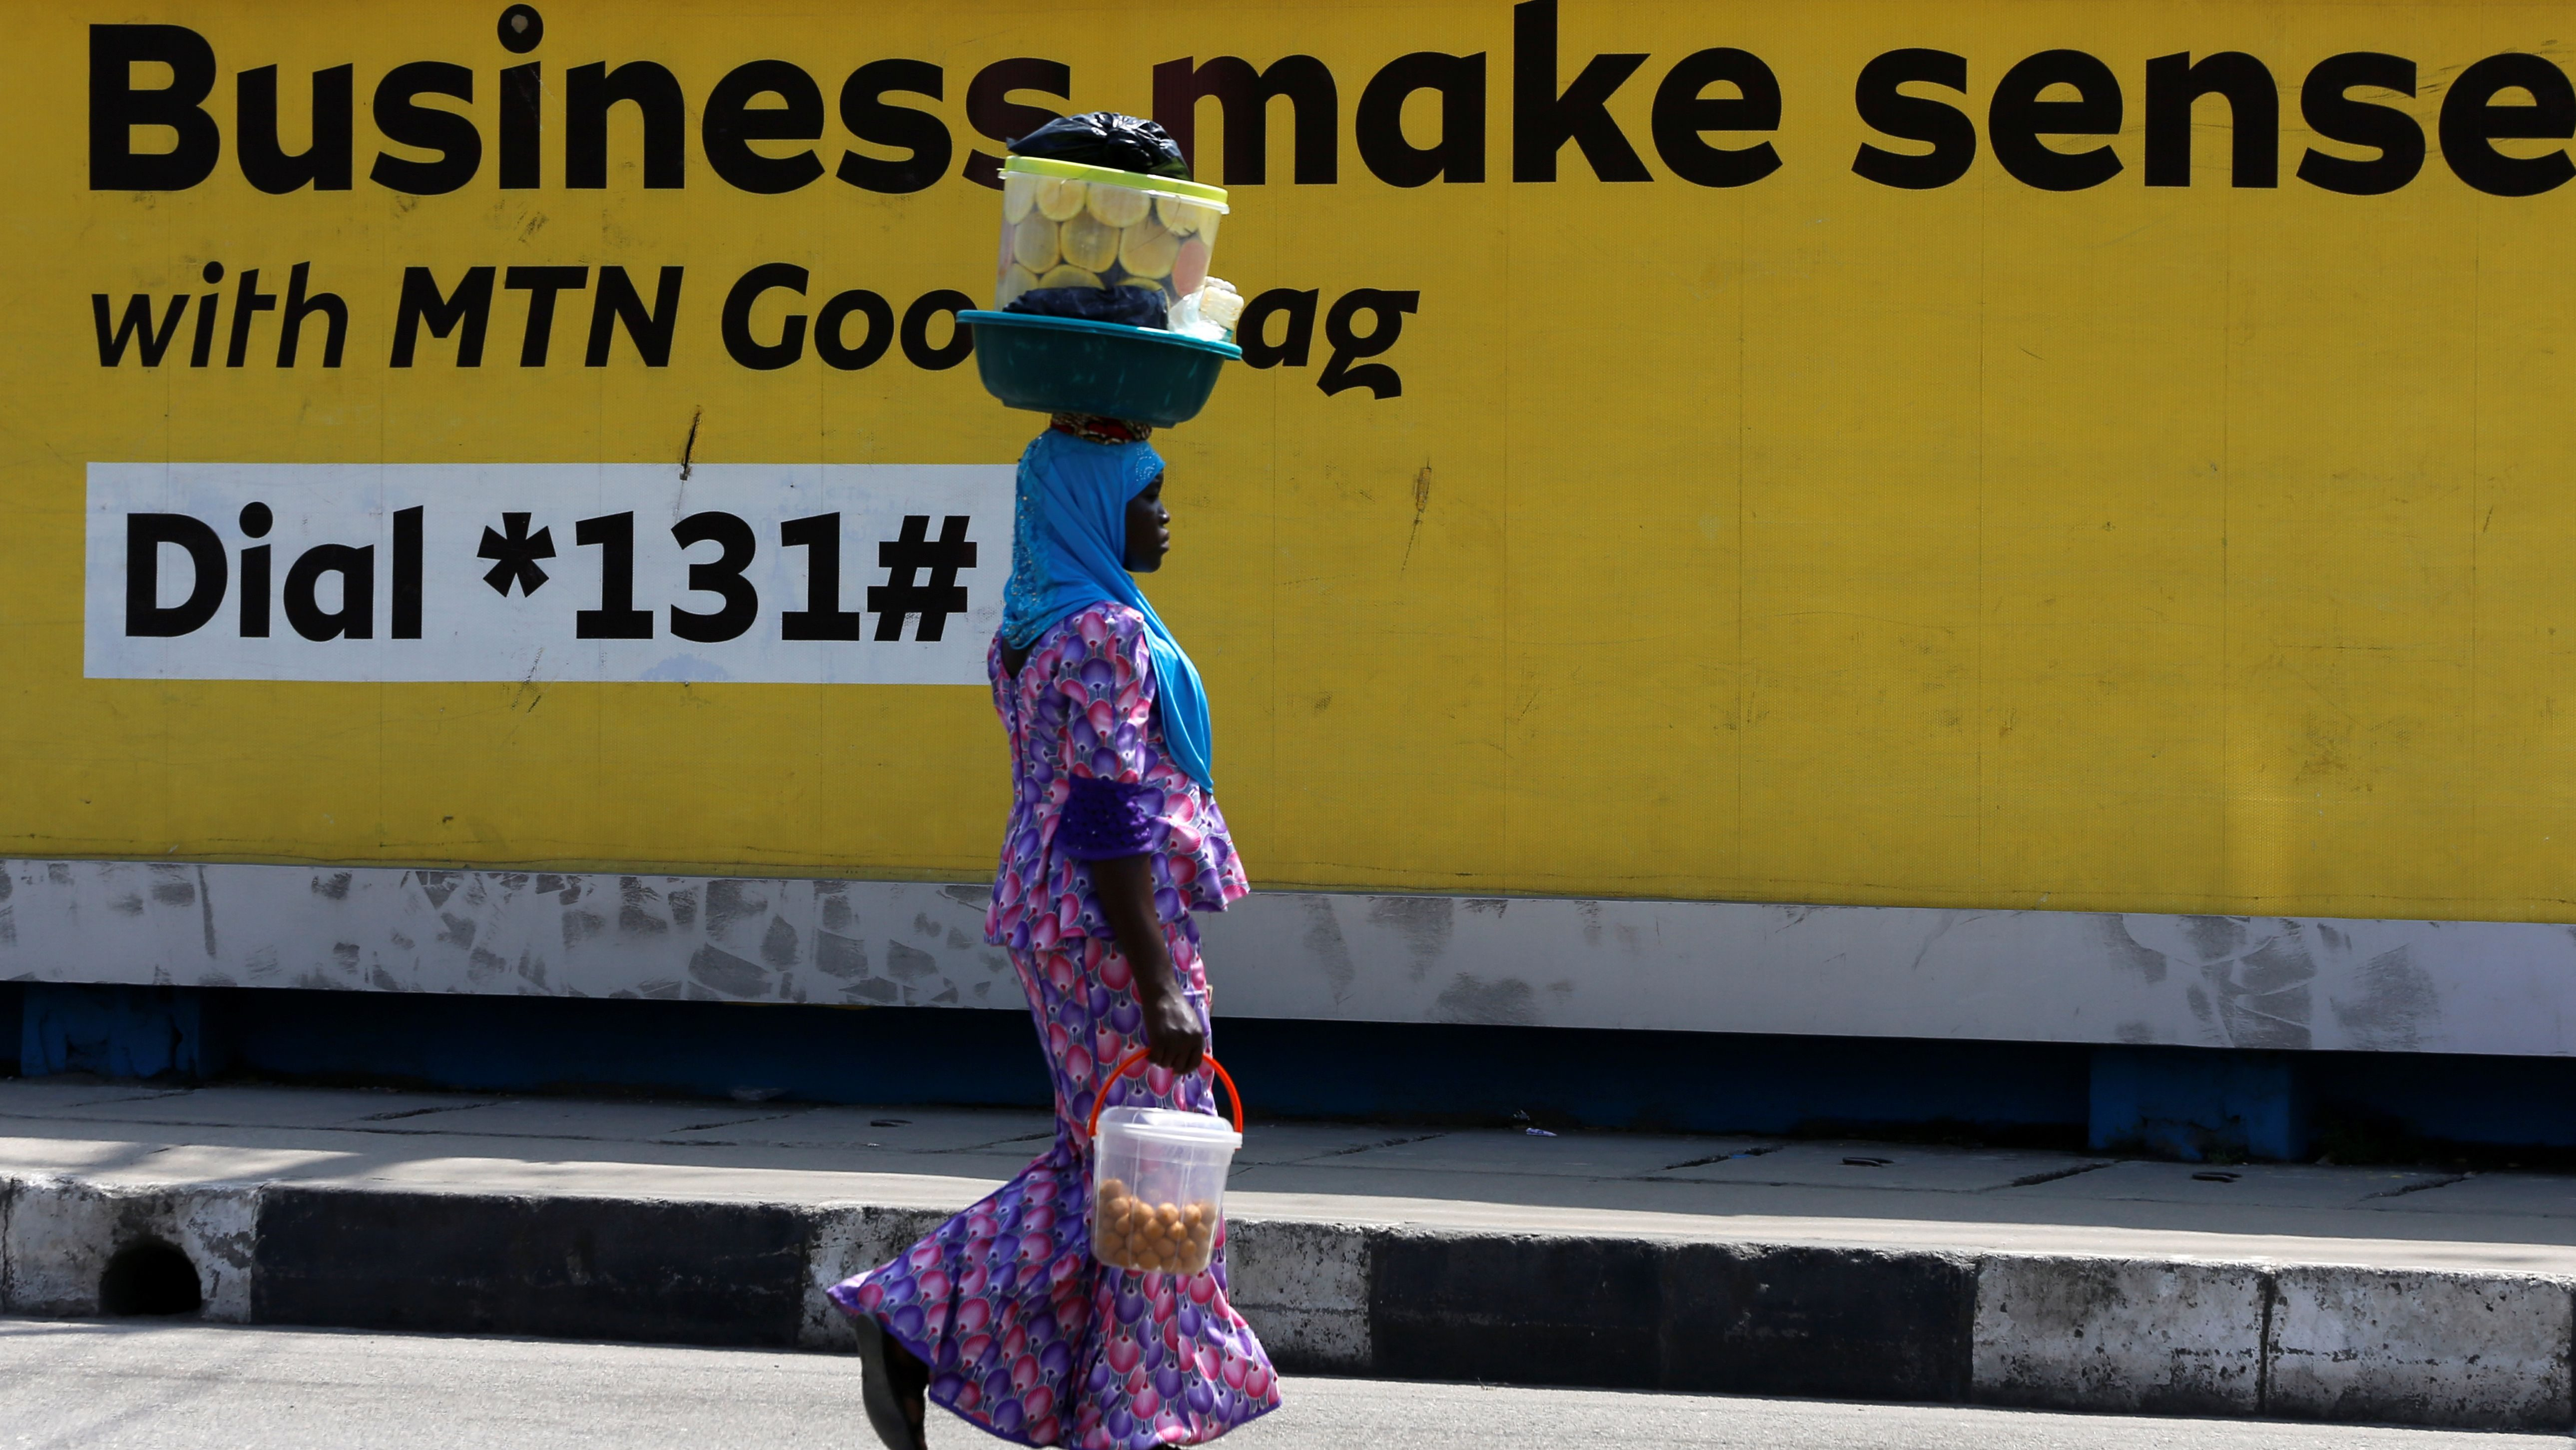 MTN is planning to launch its mobile money service in Nigeria next year